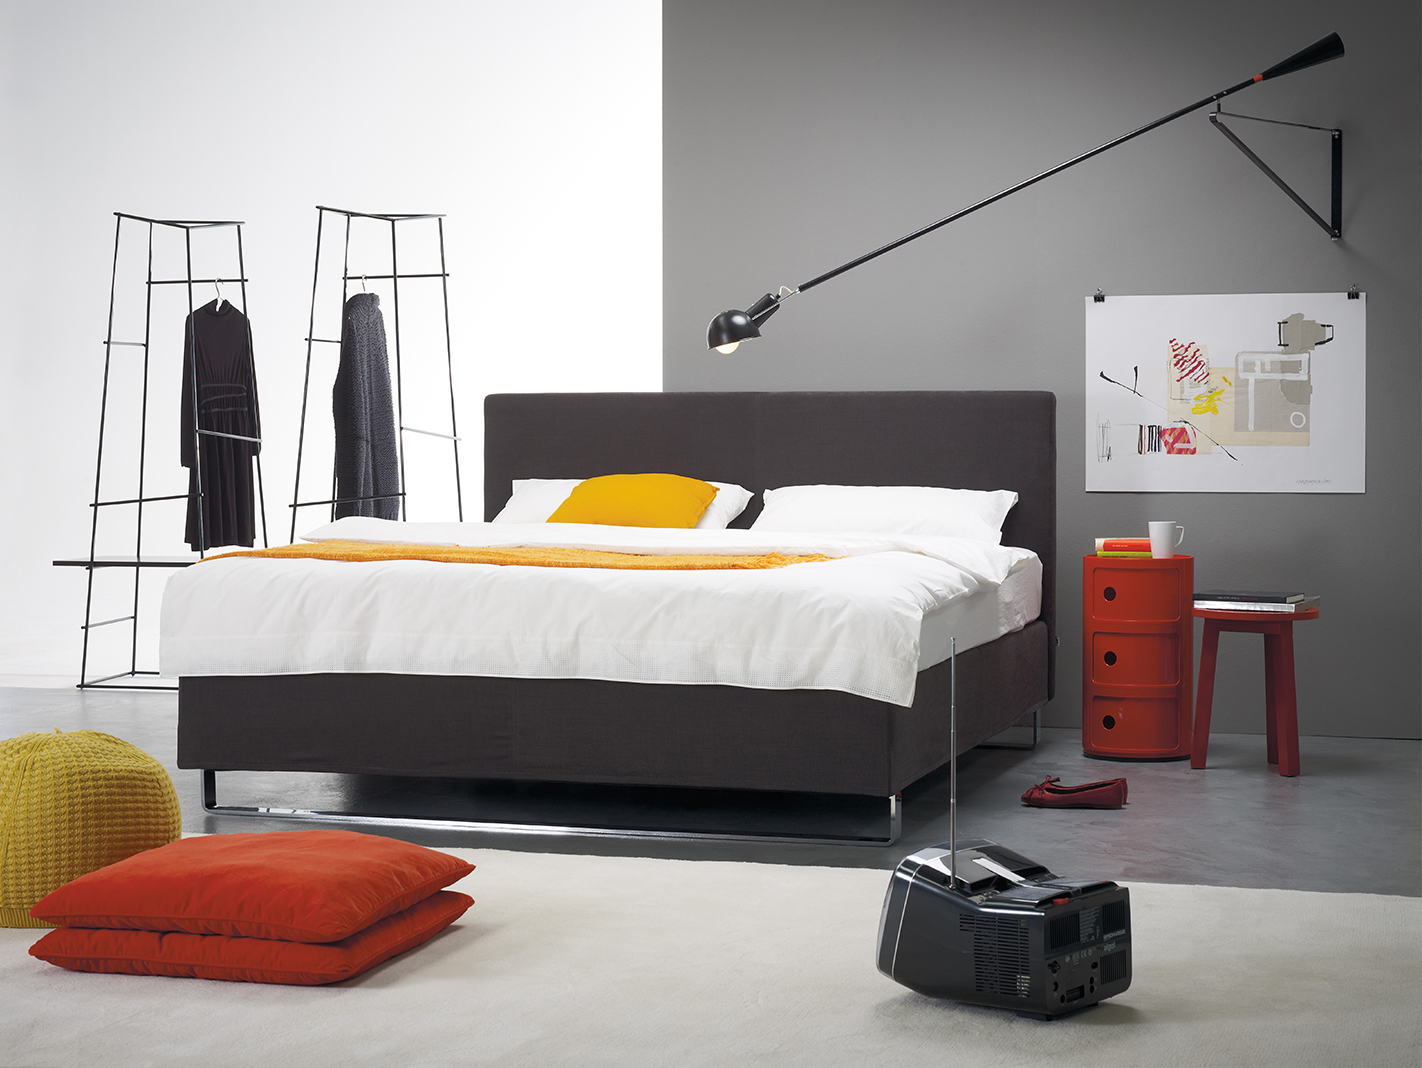 m ller design am interiors. Black Bedroom Furniture Sets. Home Design Ideas